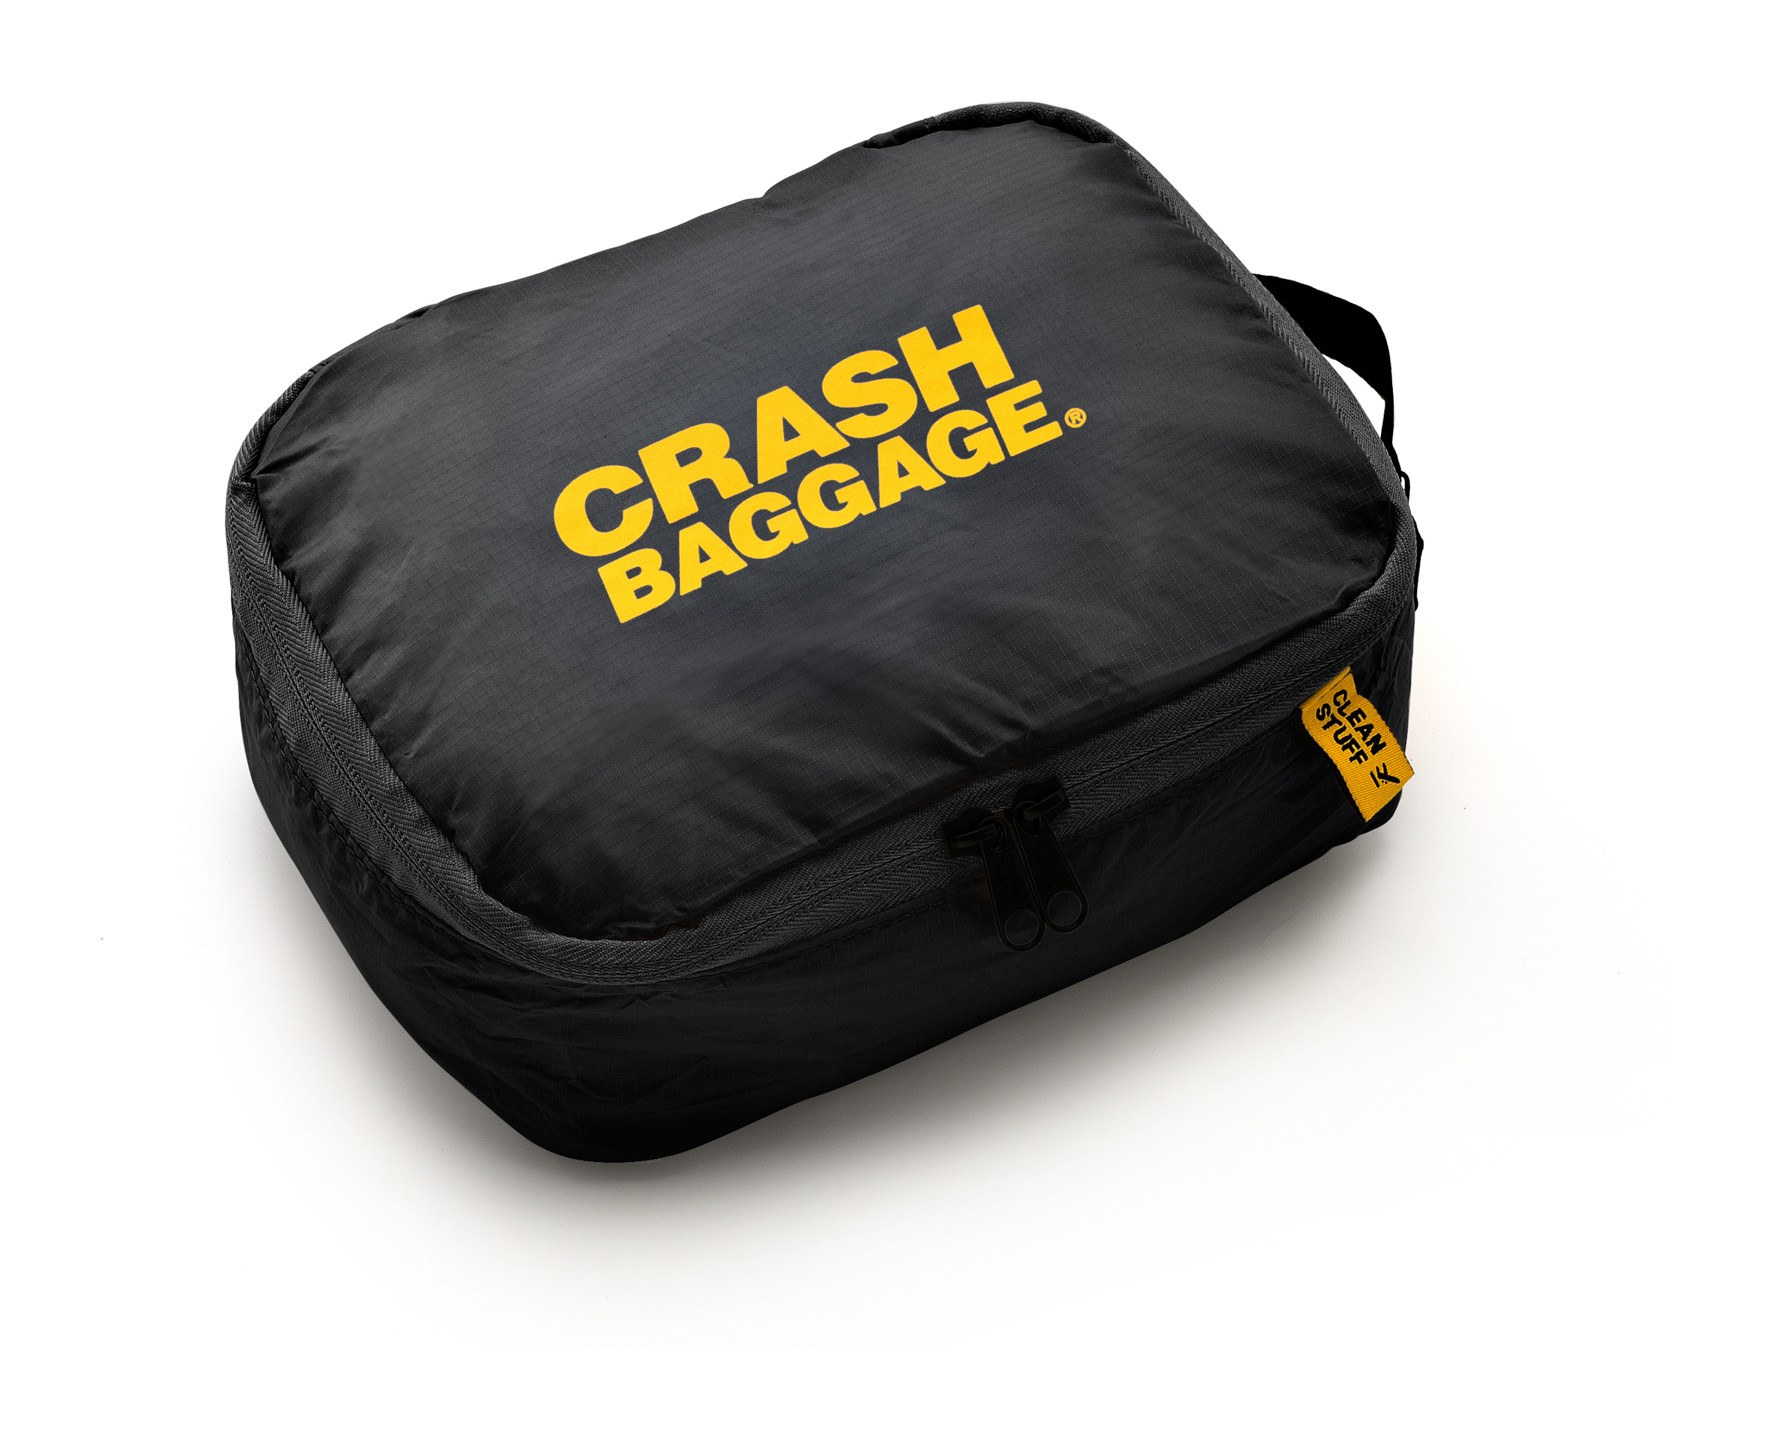 Organizer Crash Baggage mały Black - 55625